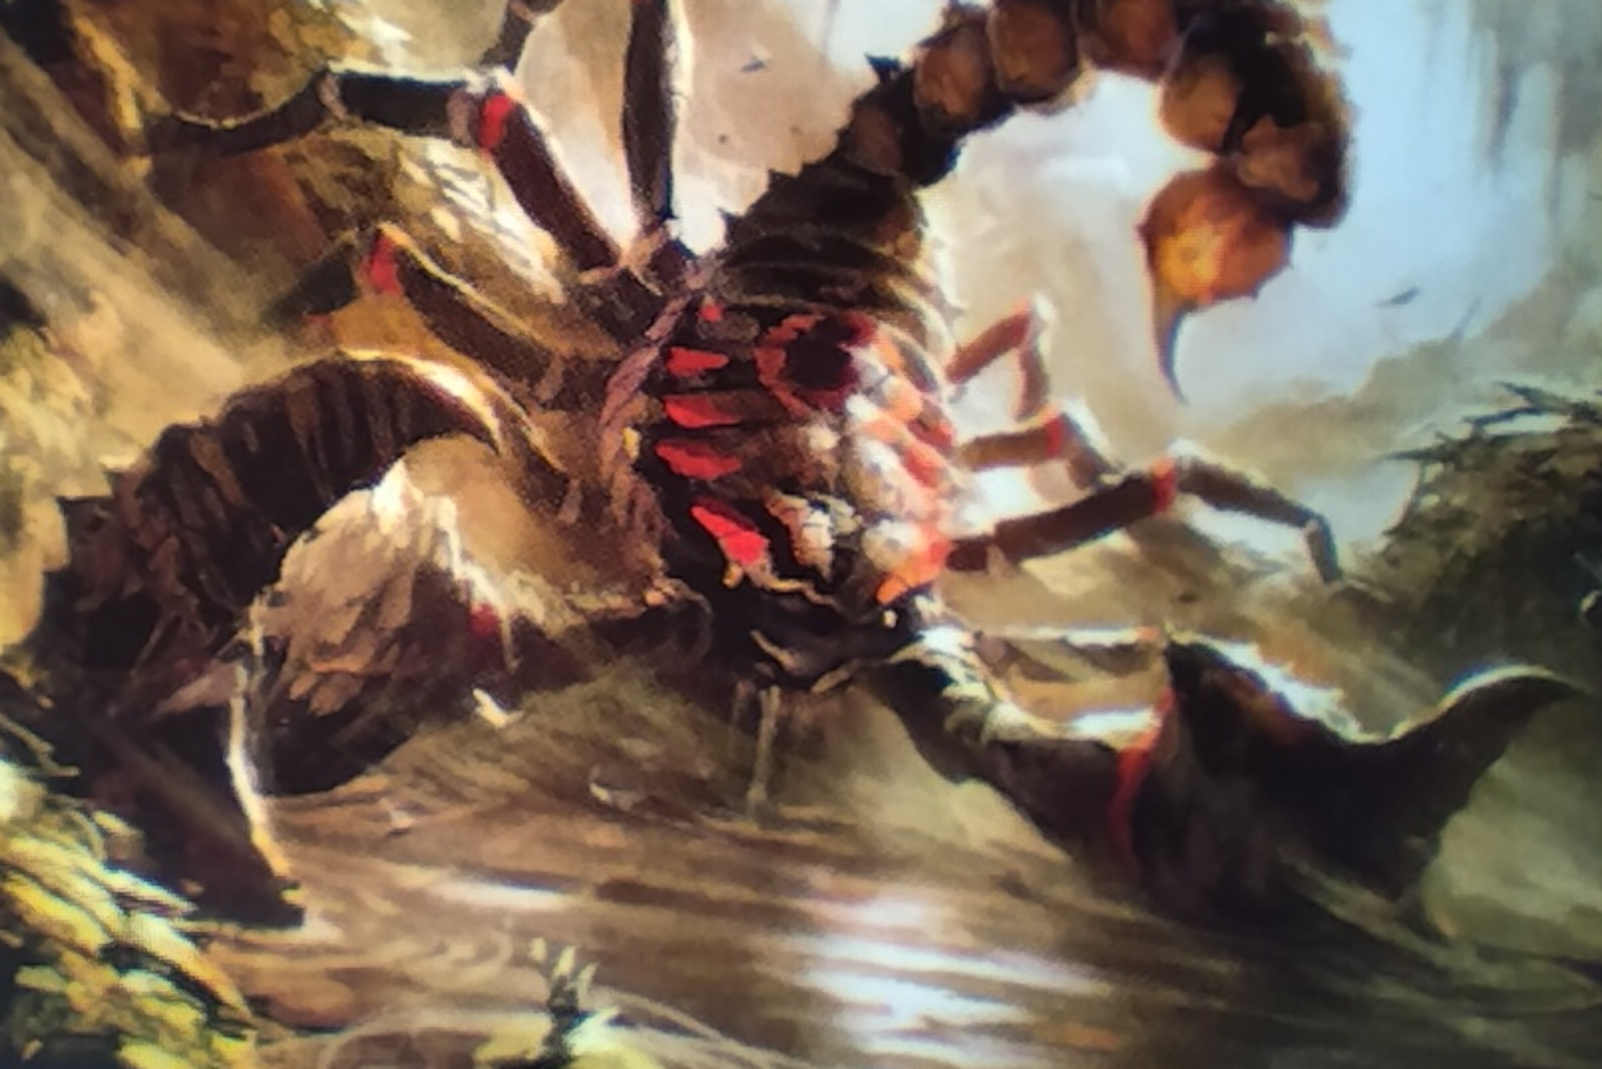 Giant Scorpion MtG card with deathtouch